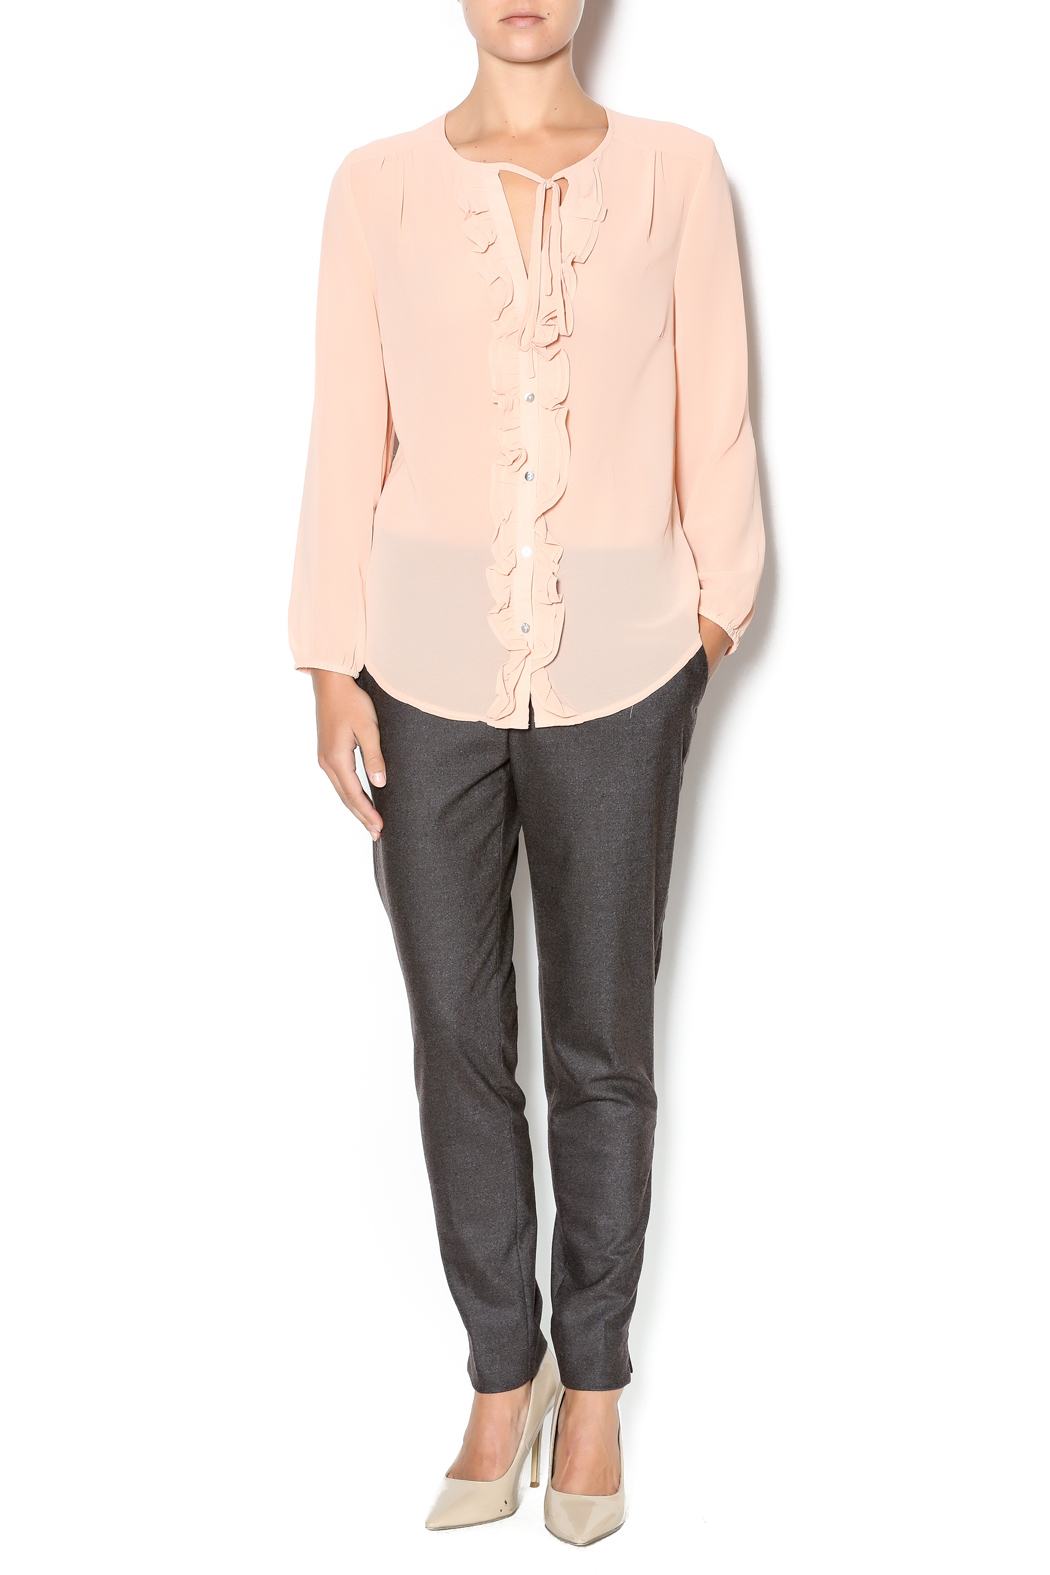 Pretty In Pink Top — Shoptiques